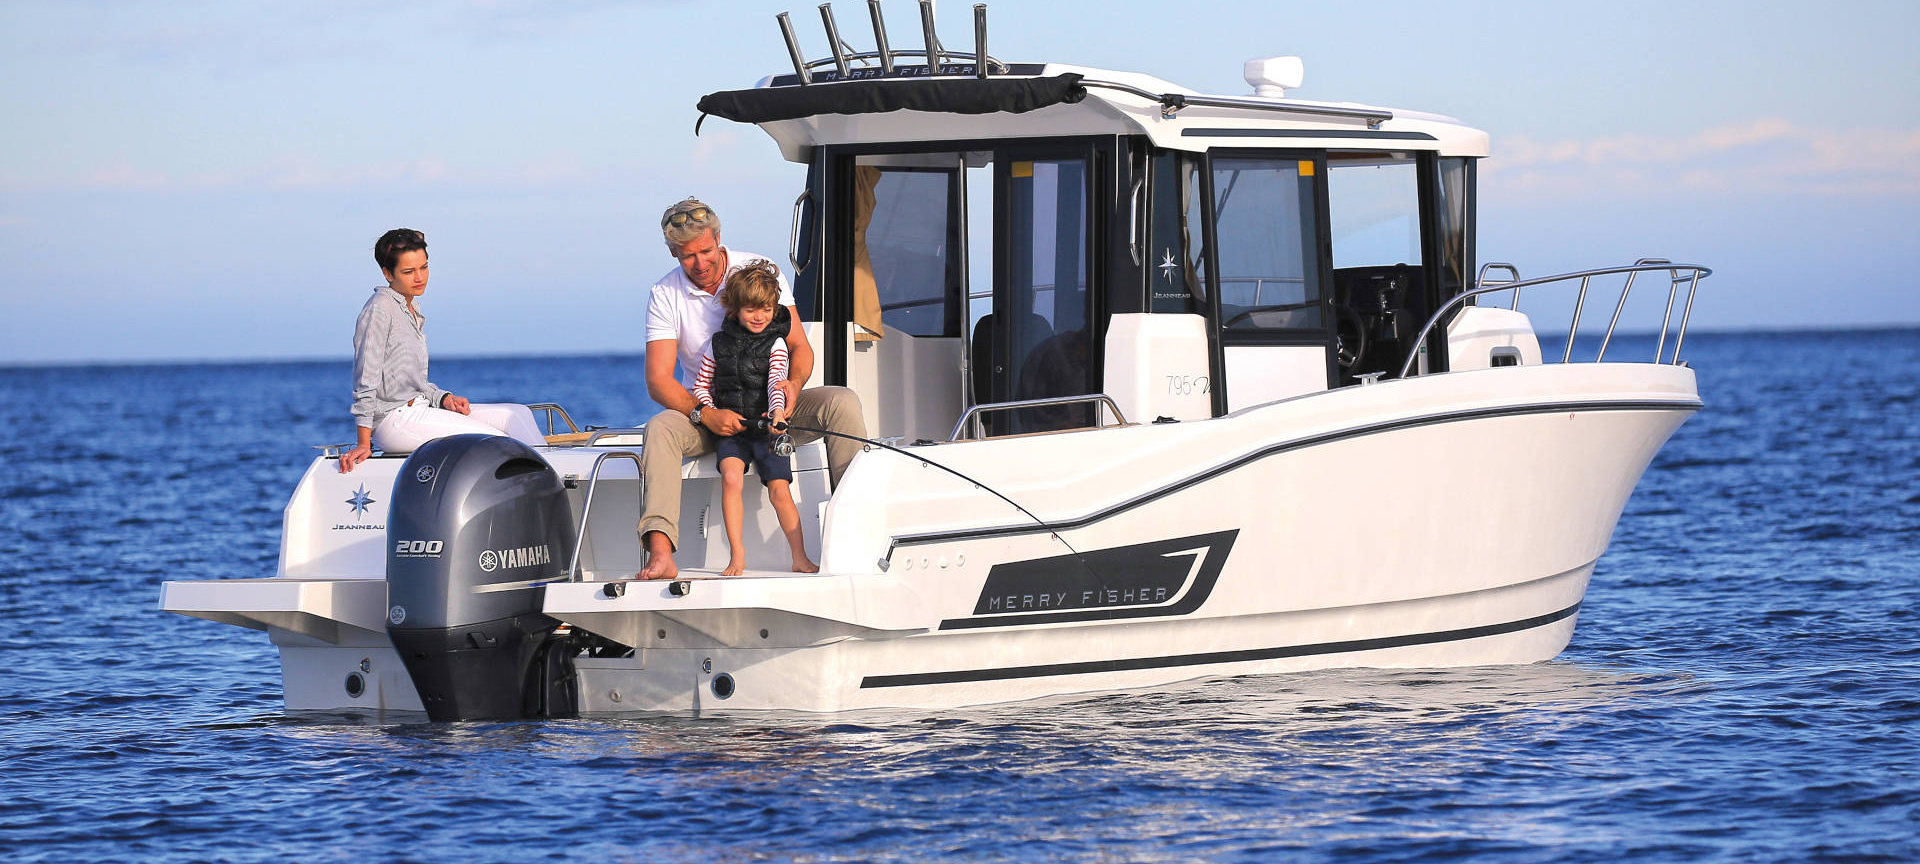 38 South Boat Sales: New Used Power Boat Yacht Broker Melbourne